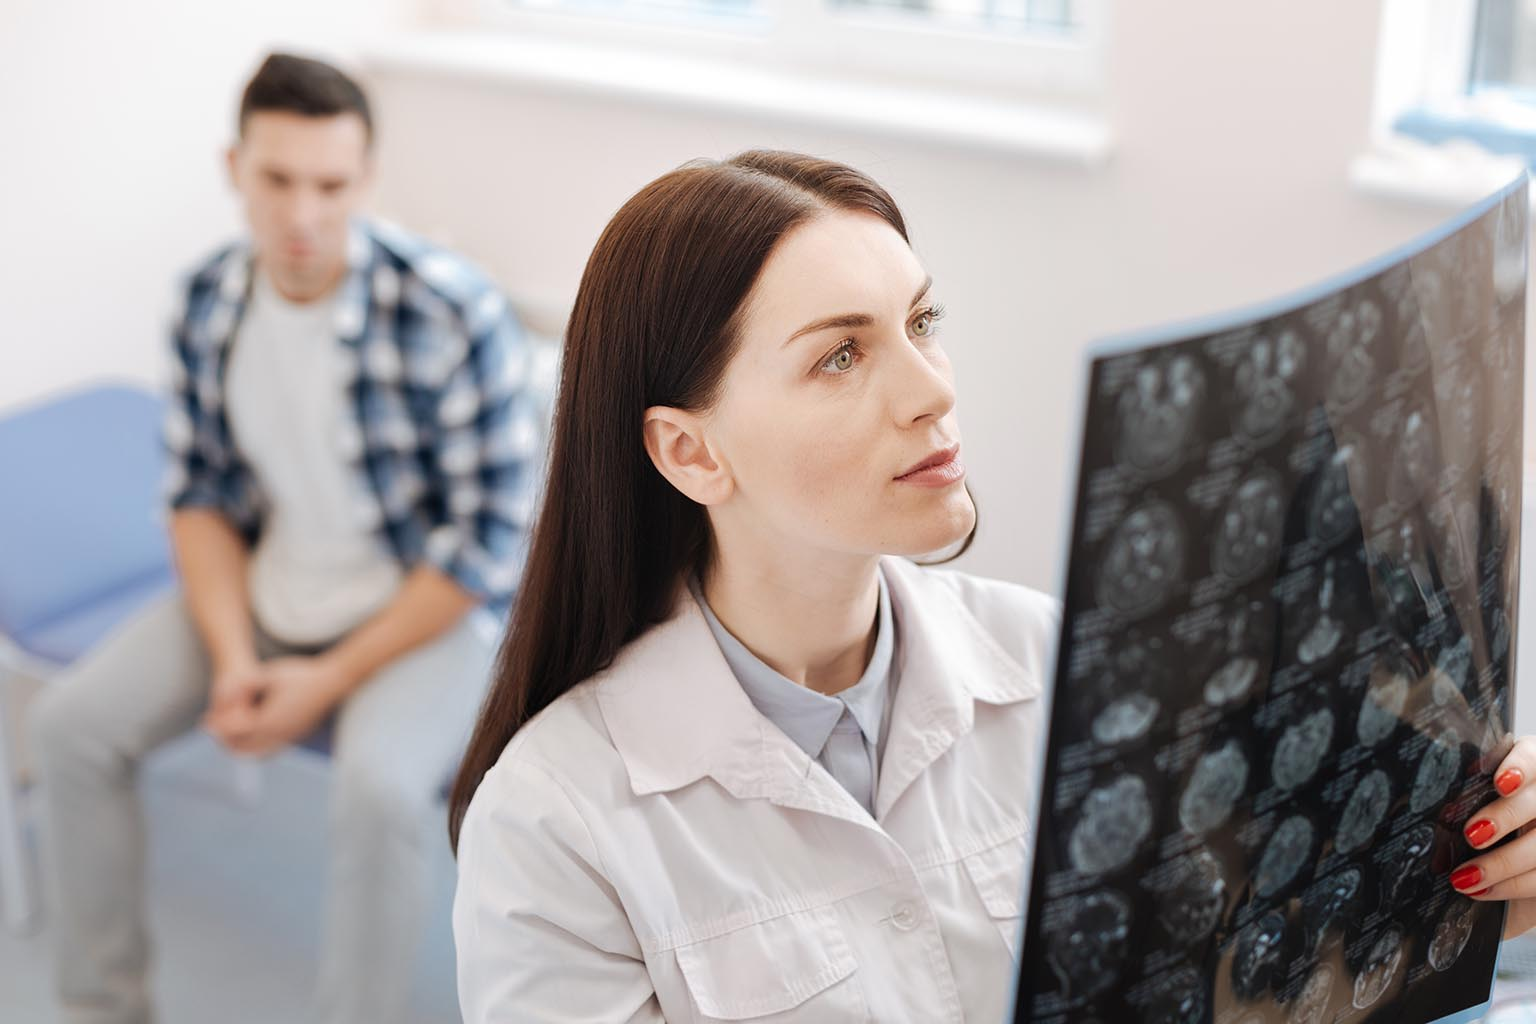 How to recruit neurologists: understanding their work preferences